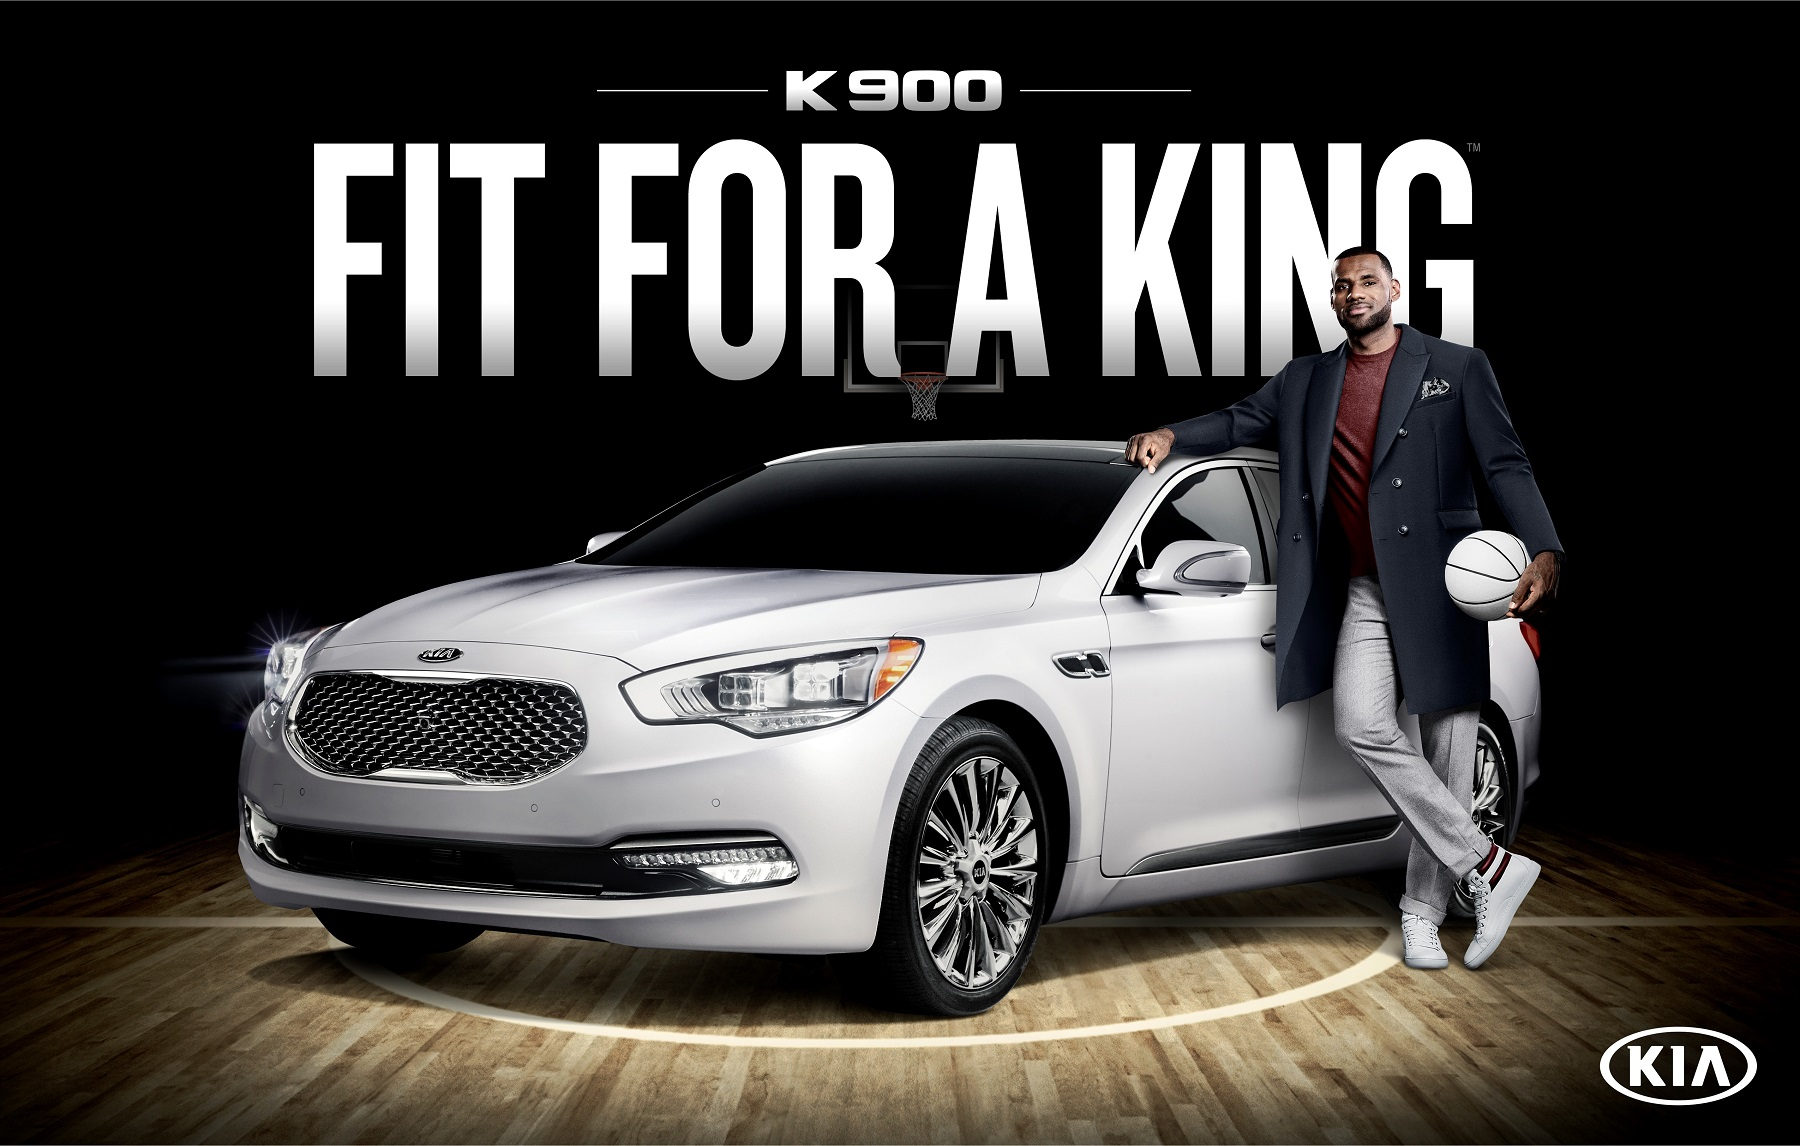 Manufacturer photo: Kia has hired celebrities as product pitchmen, including basketball legend LeBron James and actor Pierce Brosnan